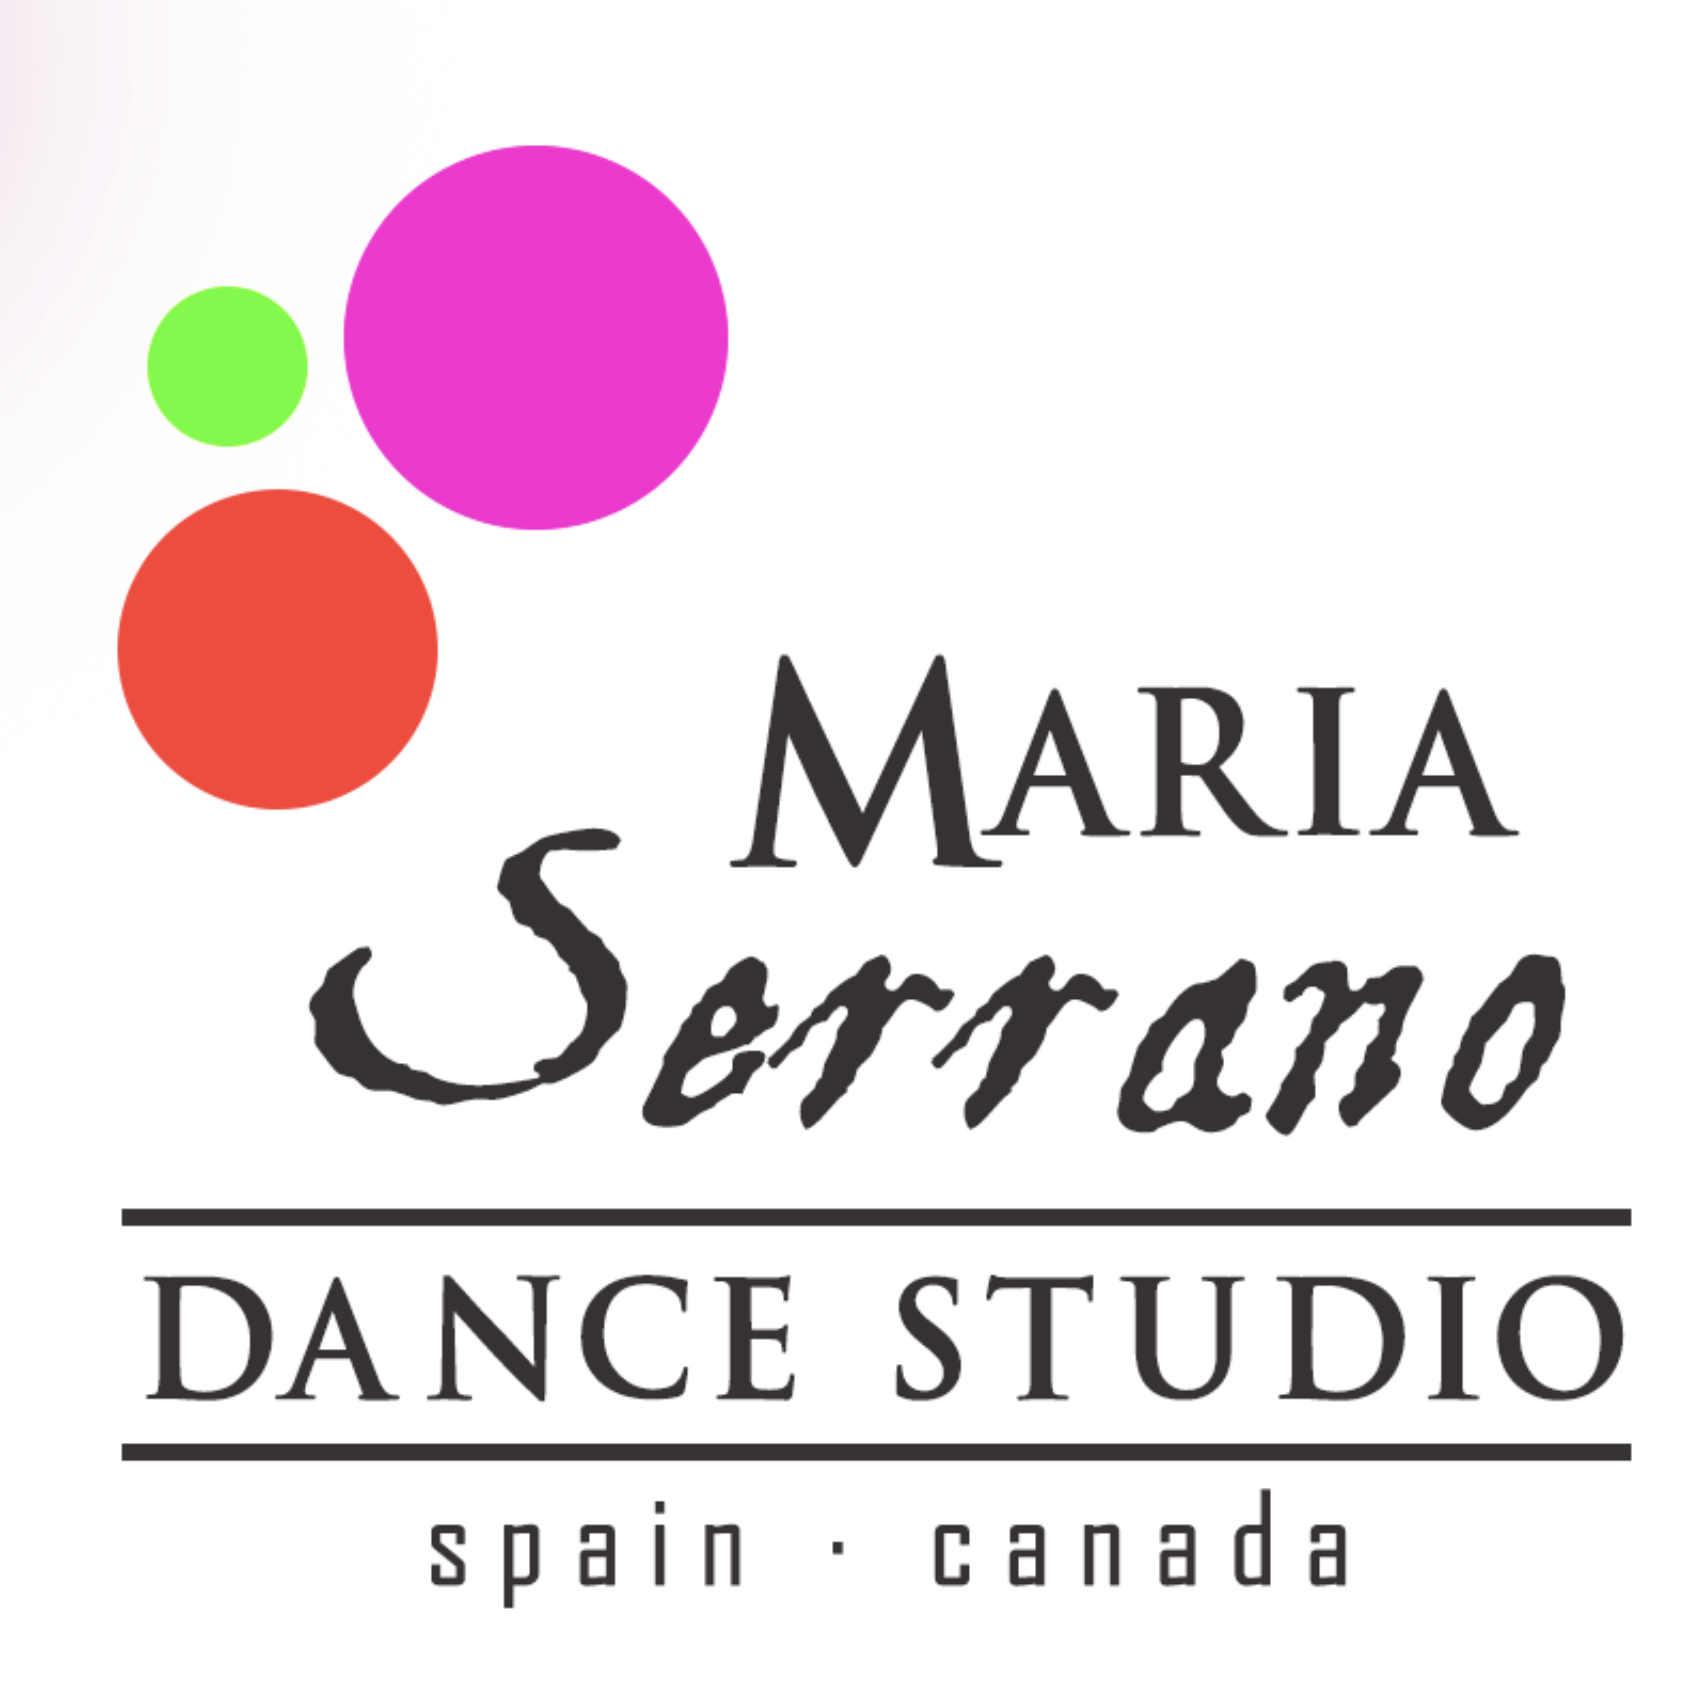 THANK YOU  Flamenco Dance Academy Maria Serrano …   Caped crusader inspiration Tuesday